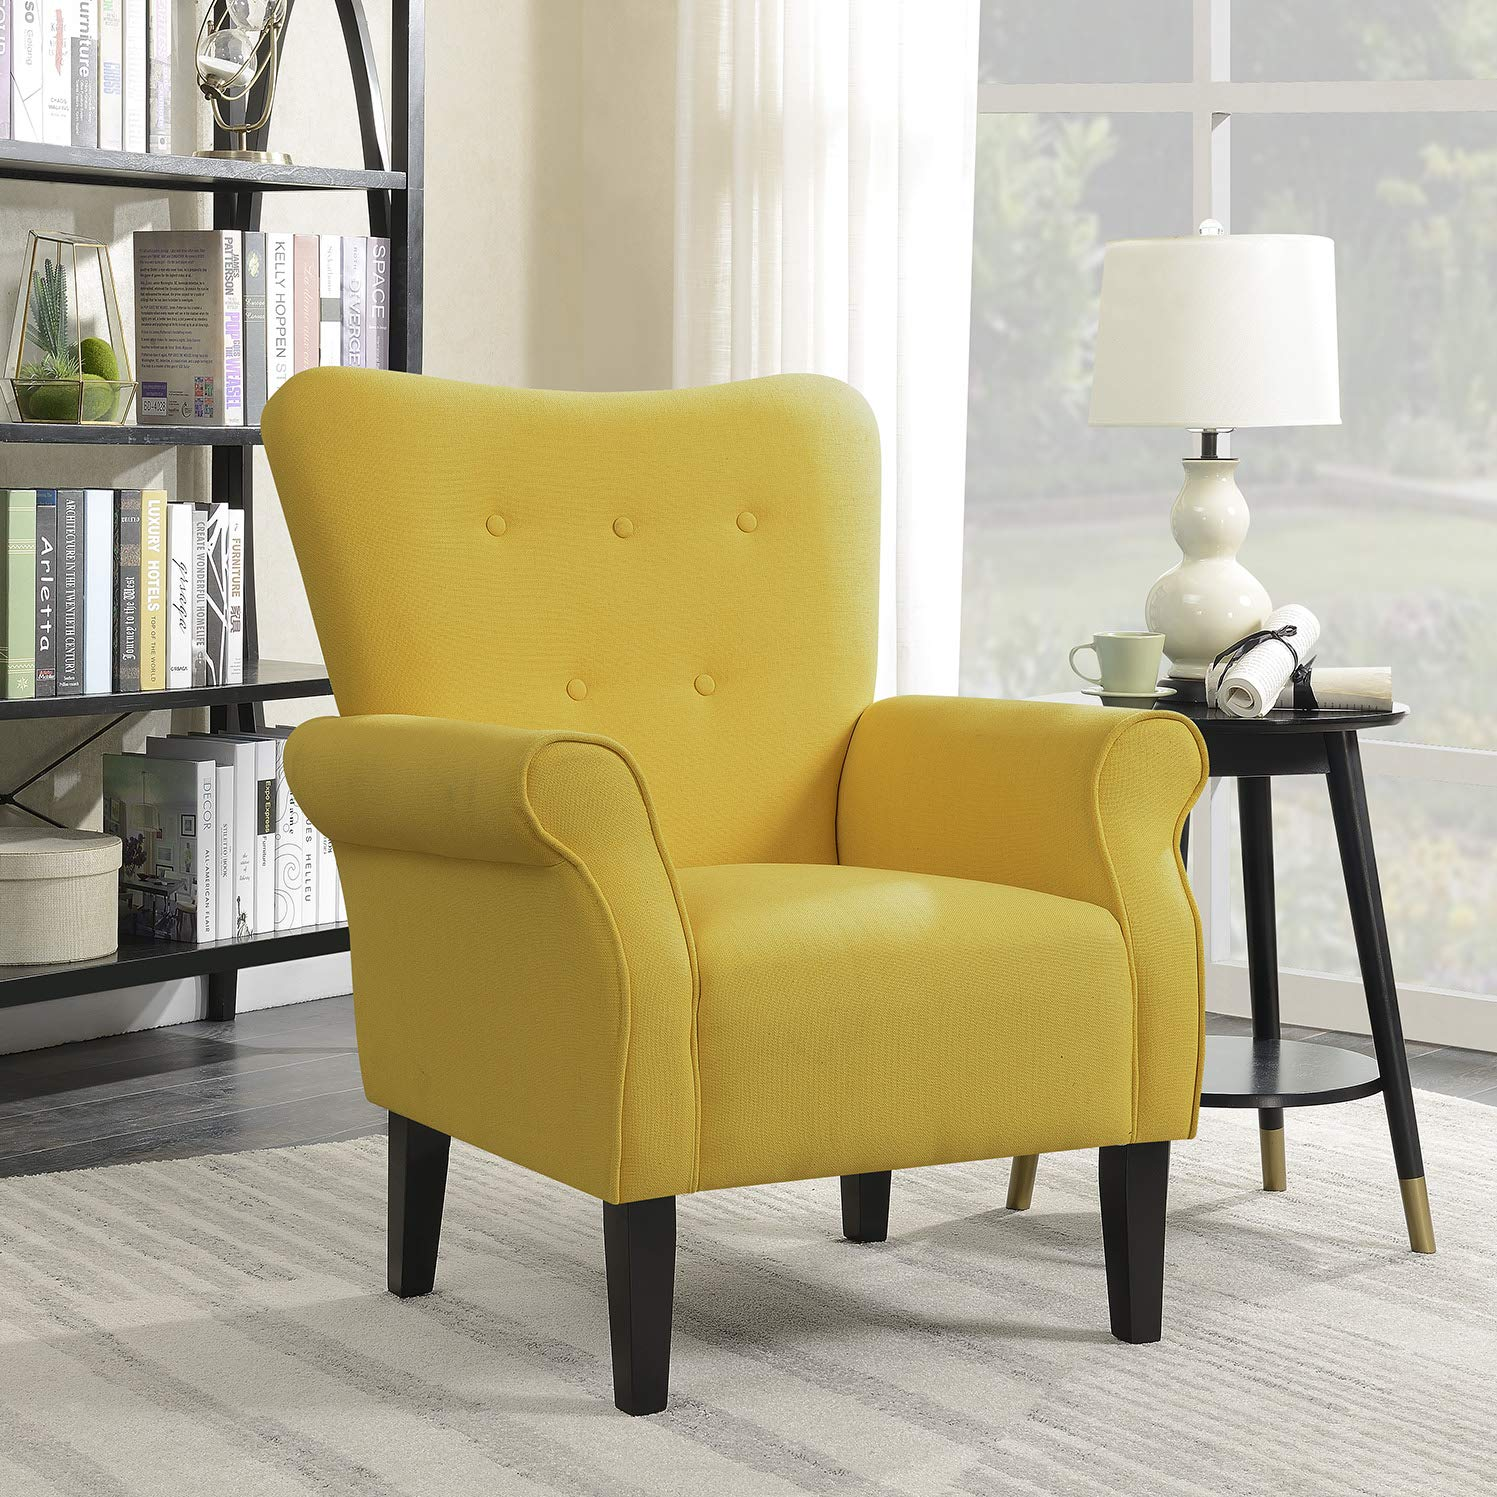 Accent Chairs For Living Room Amazon.com: Belleze 014-HG-30323-CY Accent Chair, Citrine Yellow: Kitchen u0026  Dining